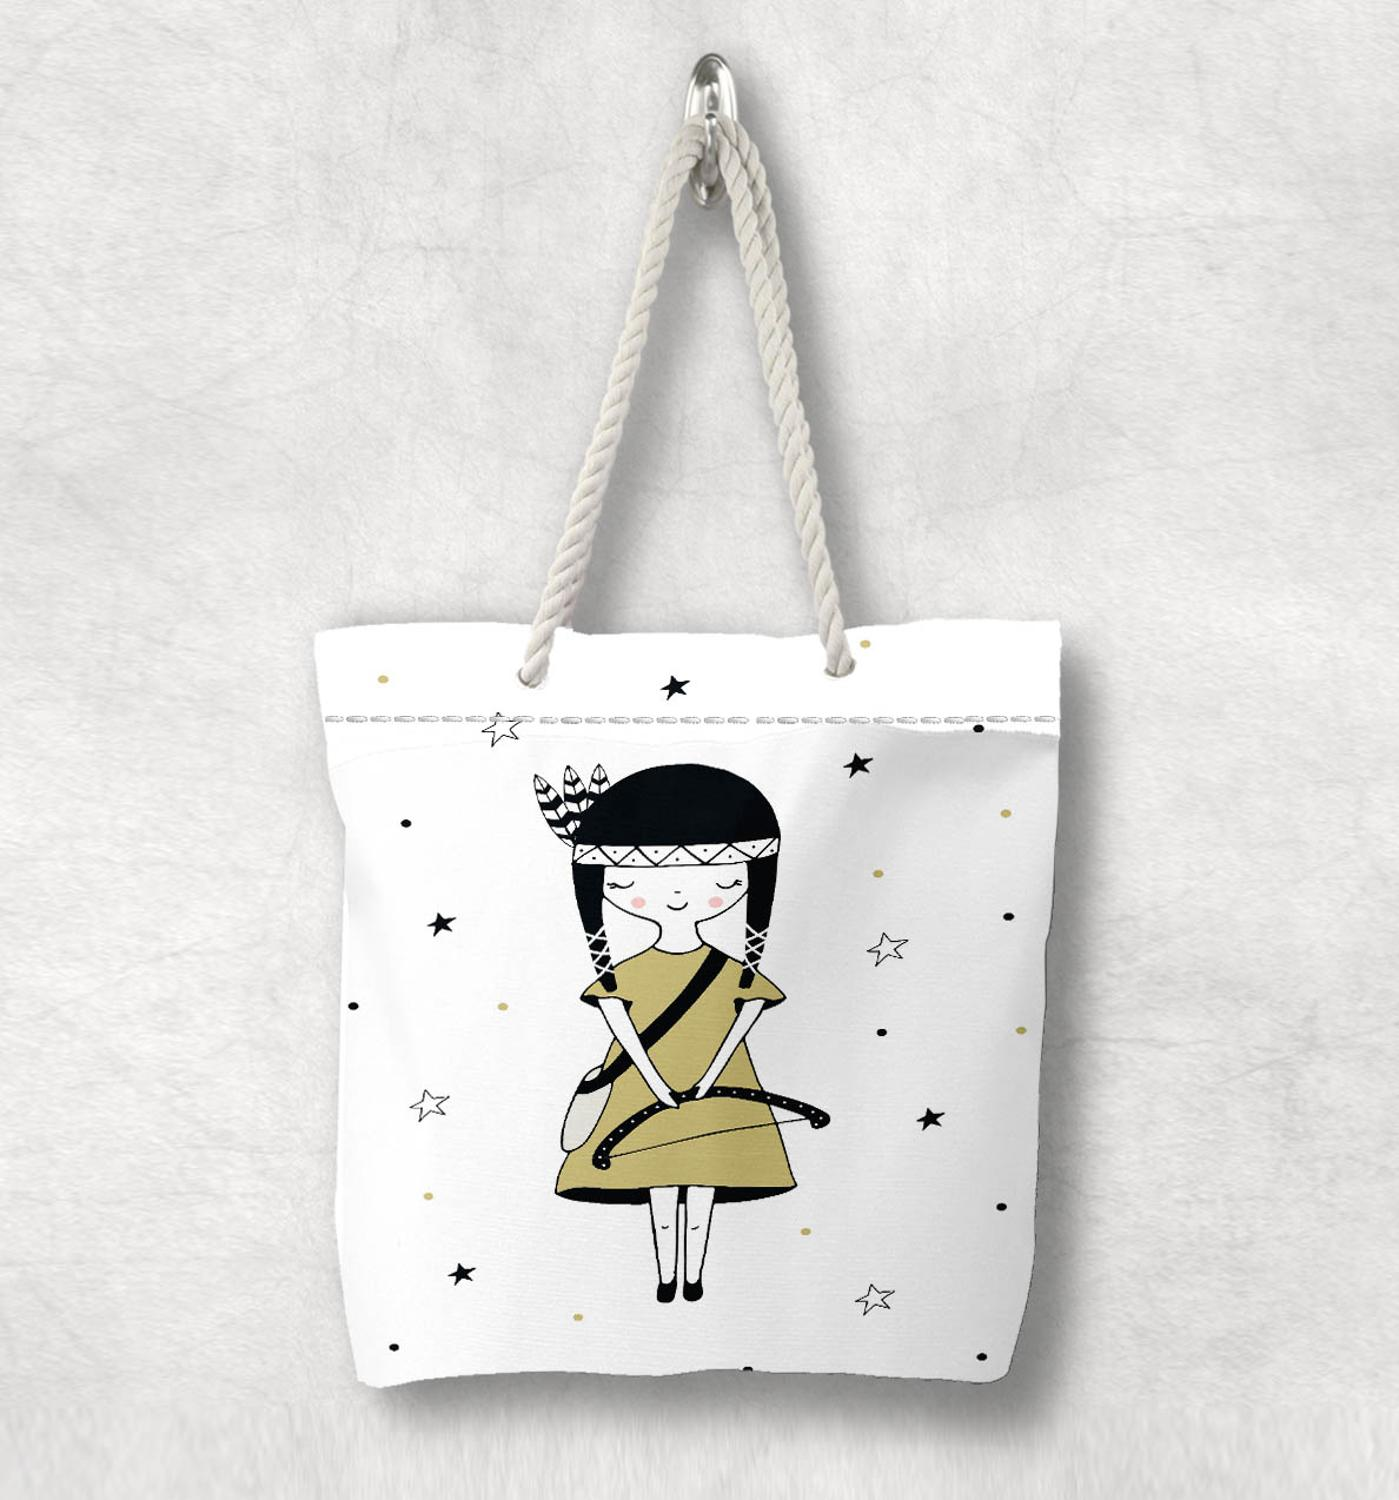 Else Kızılderili Oklu Prenses Kız Nordic Scandinavian White Rope Handle Canvas Bag  Cartoon Print Zippered Tote Bag Shoulder Bag